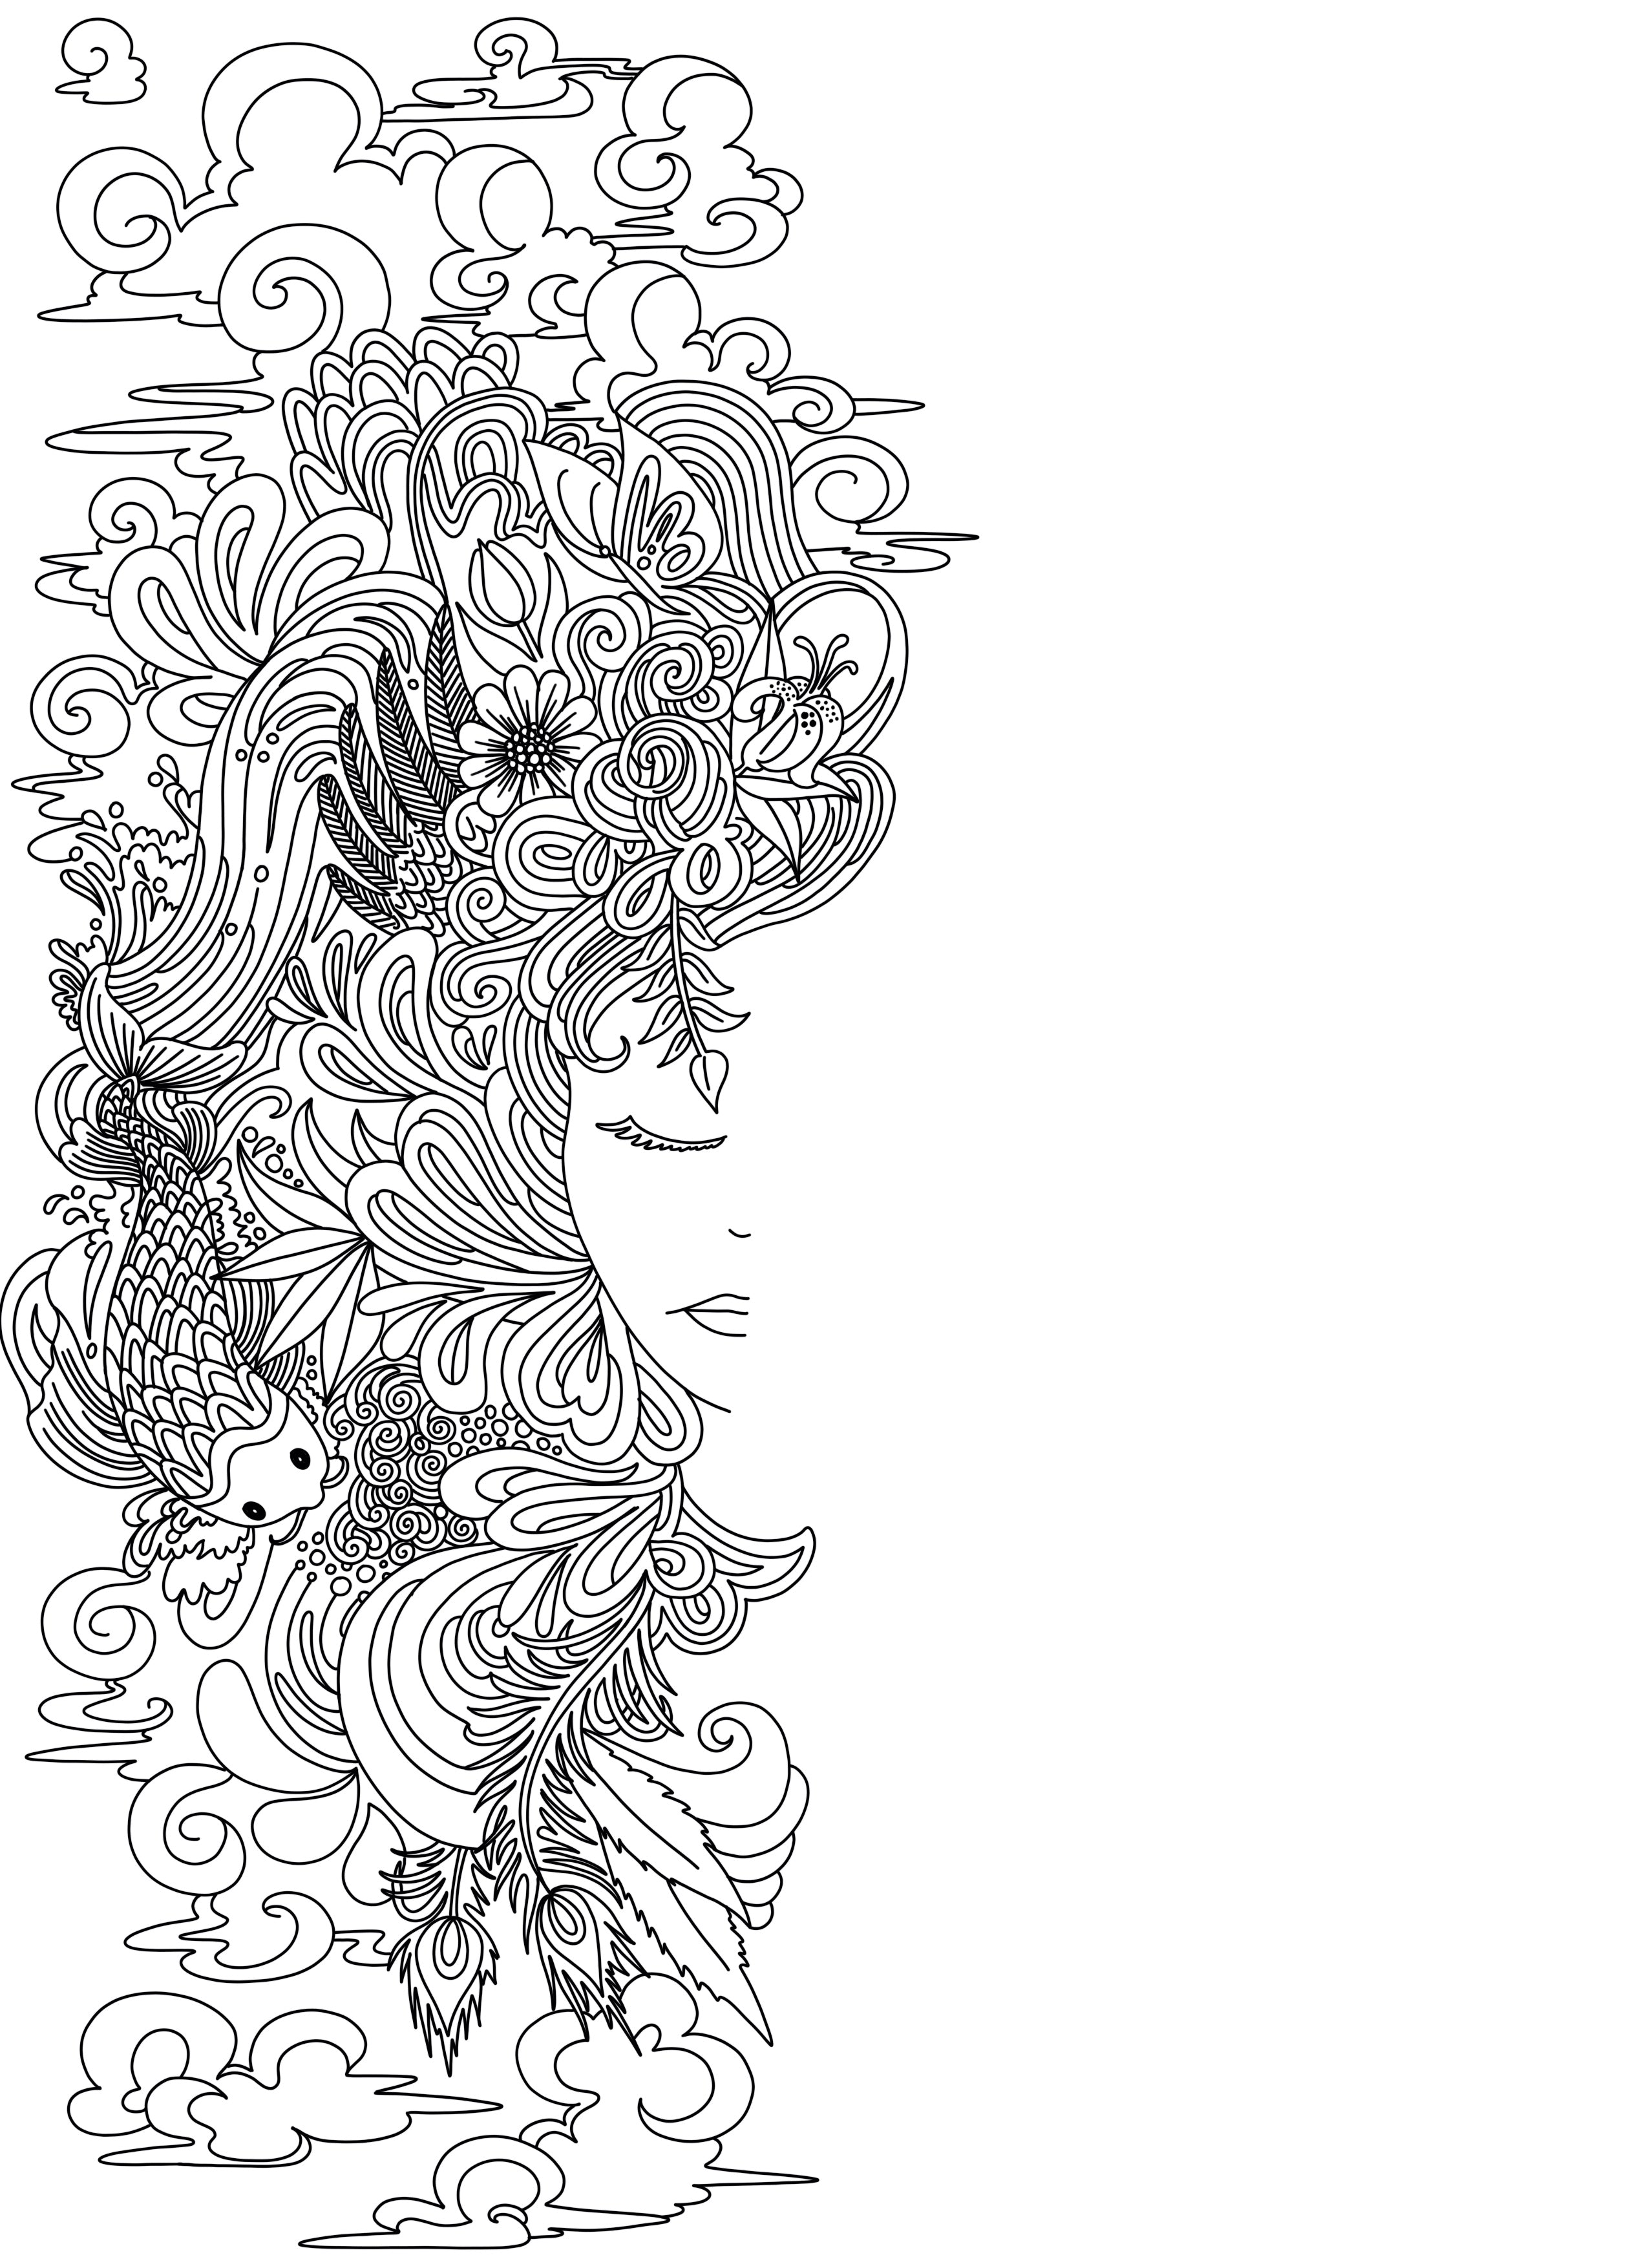 Goddess Coloring Page - Borrelli Illustrations